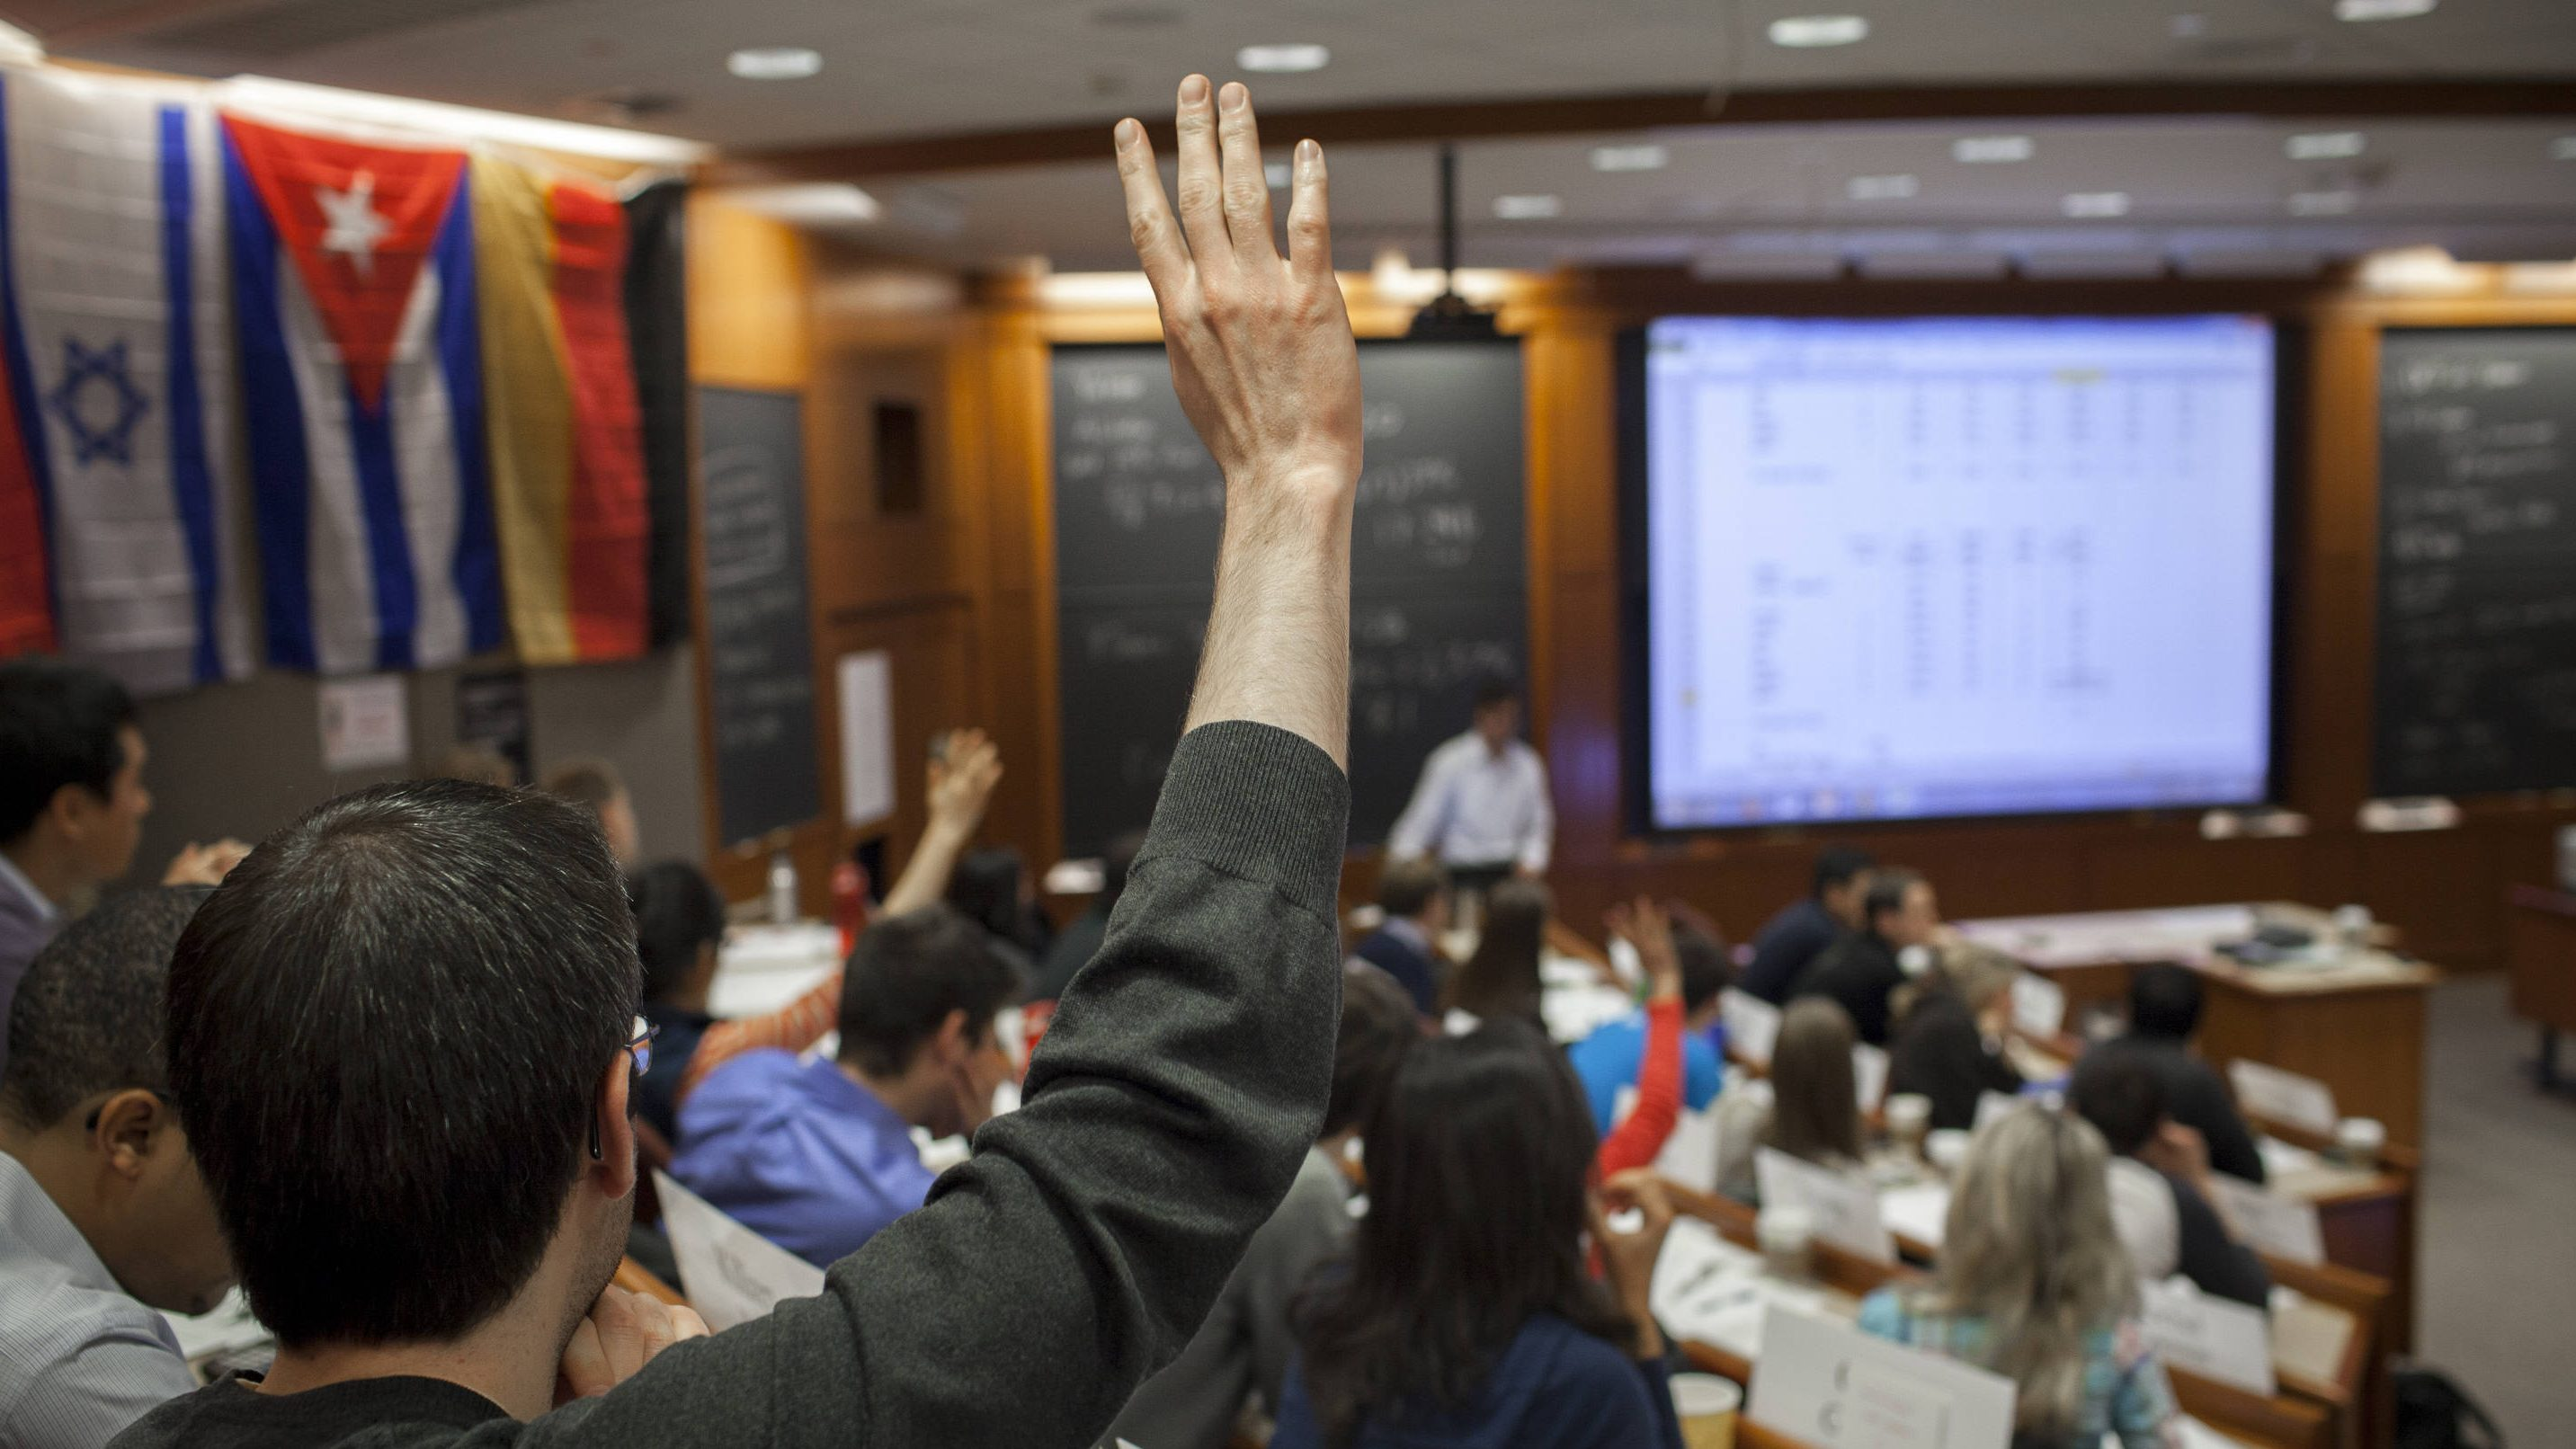 The problem with Harvard Business School case studies